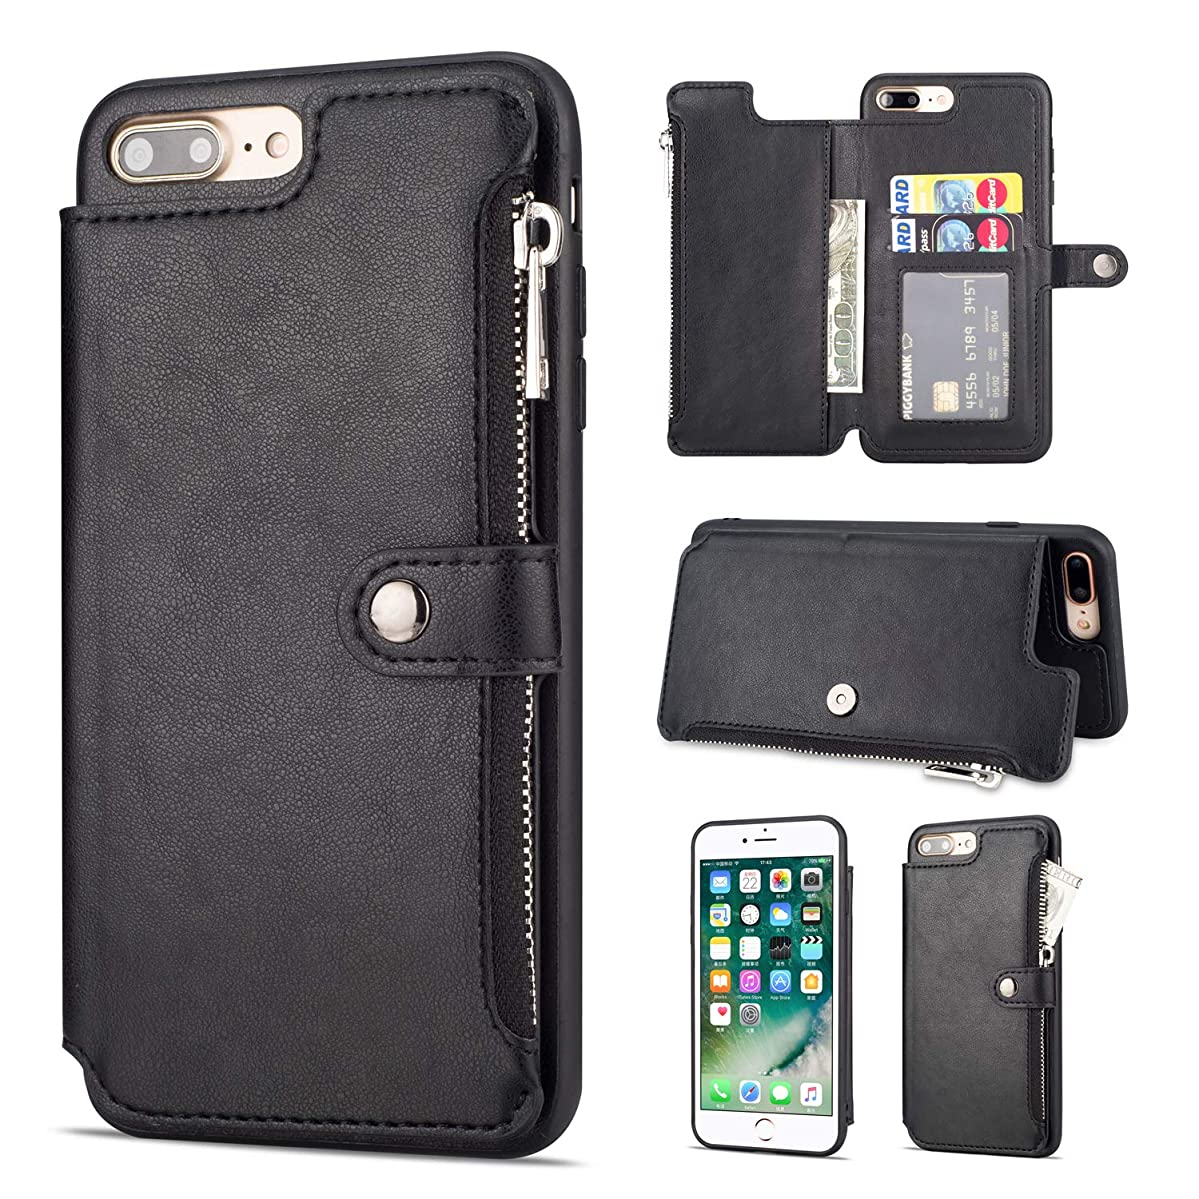 Yobby Leather Zipper Back Wallet Case for iPhone 7 Plus, iPhone 8 Plus Slim Black Case with Card Holder,Shockproof Protective Bumper Stand Magnetic Closure Cover